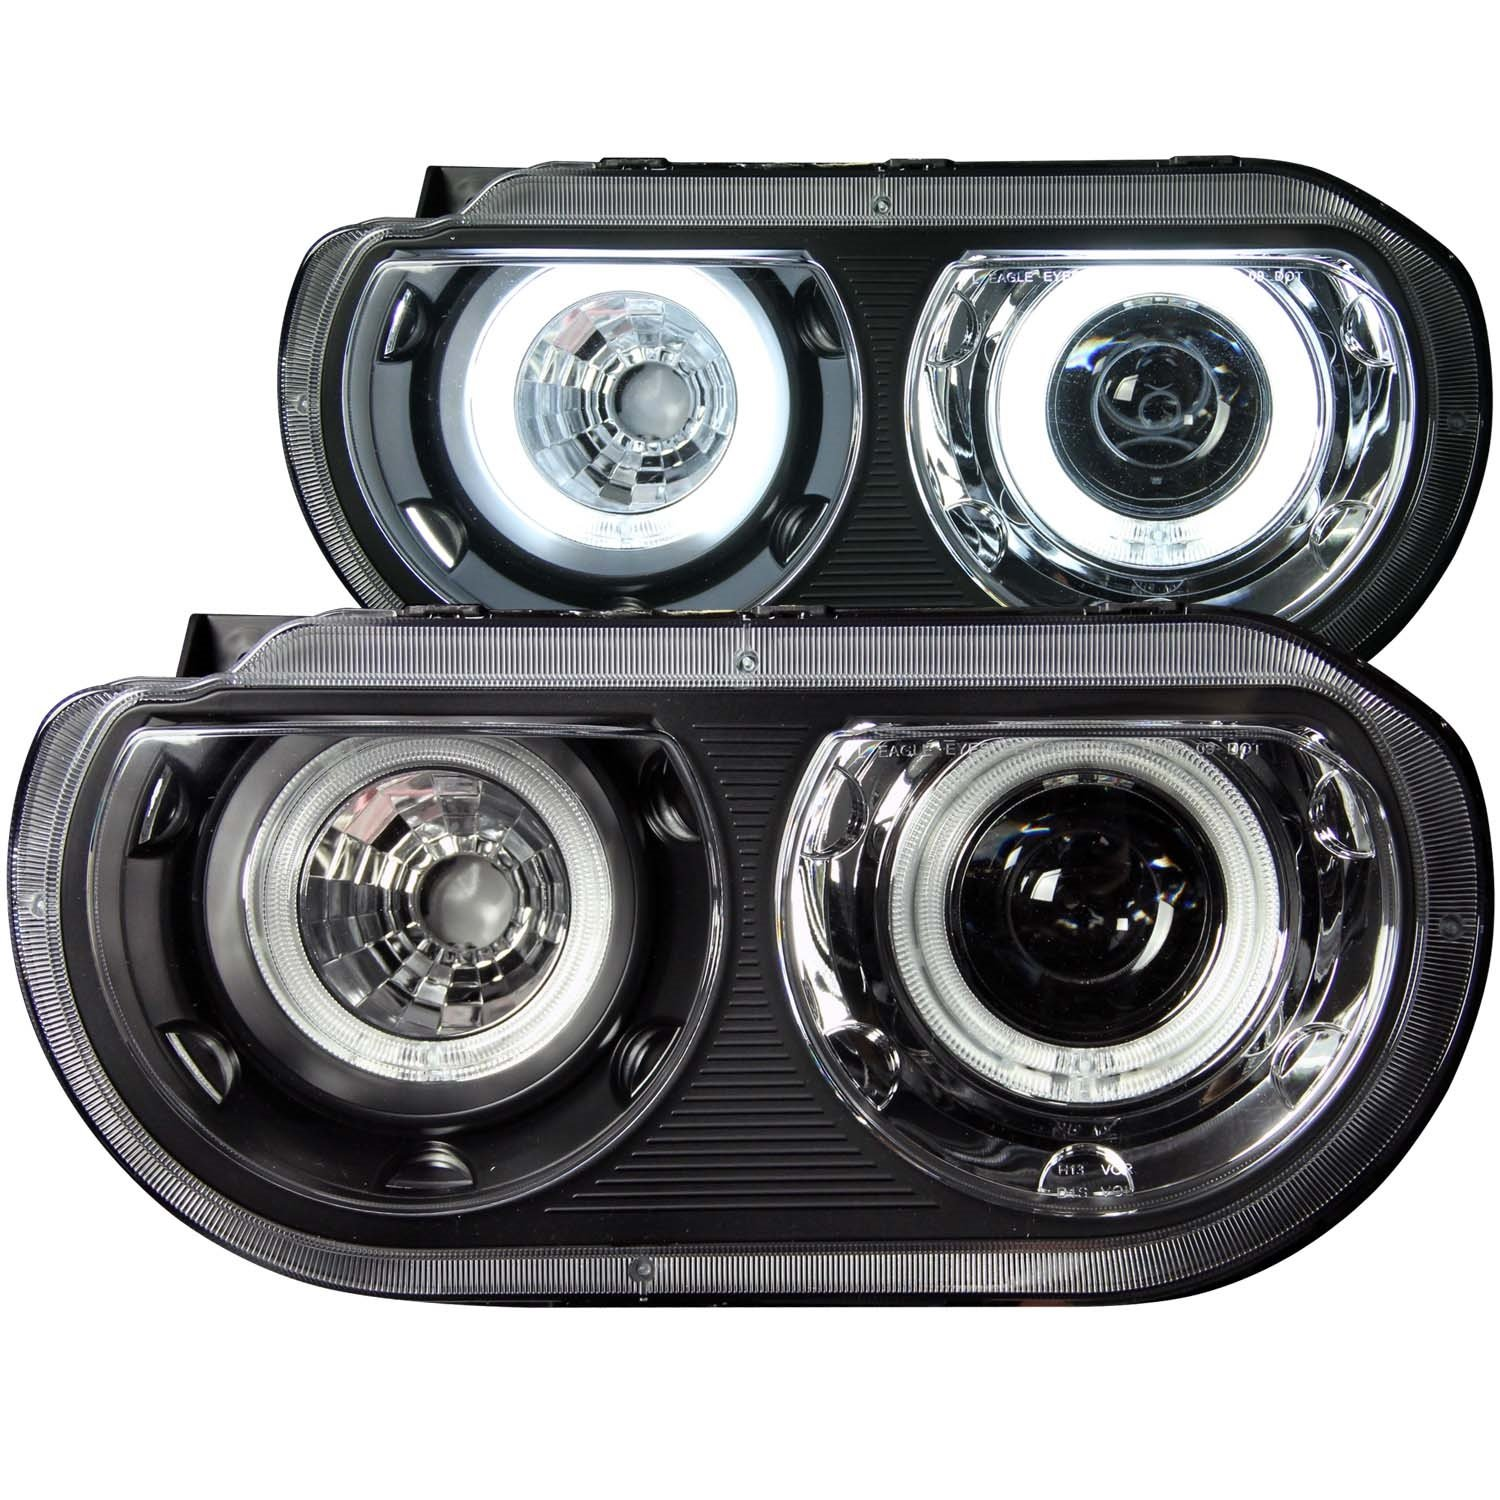 Anzousa 121306 Black Clear Dual Projector Halo Headlight Anzo Hid Wiring Diagram For Dodge Challenger Sold In Pairs Automotive